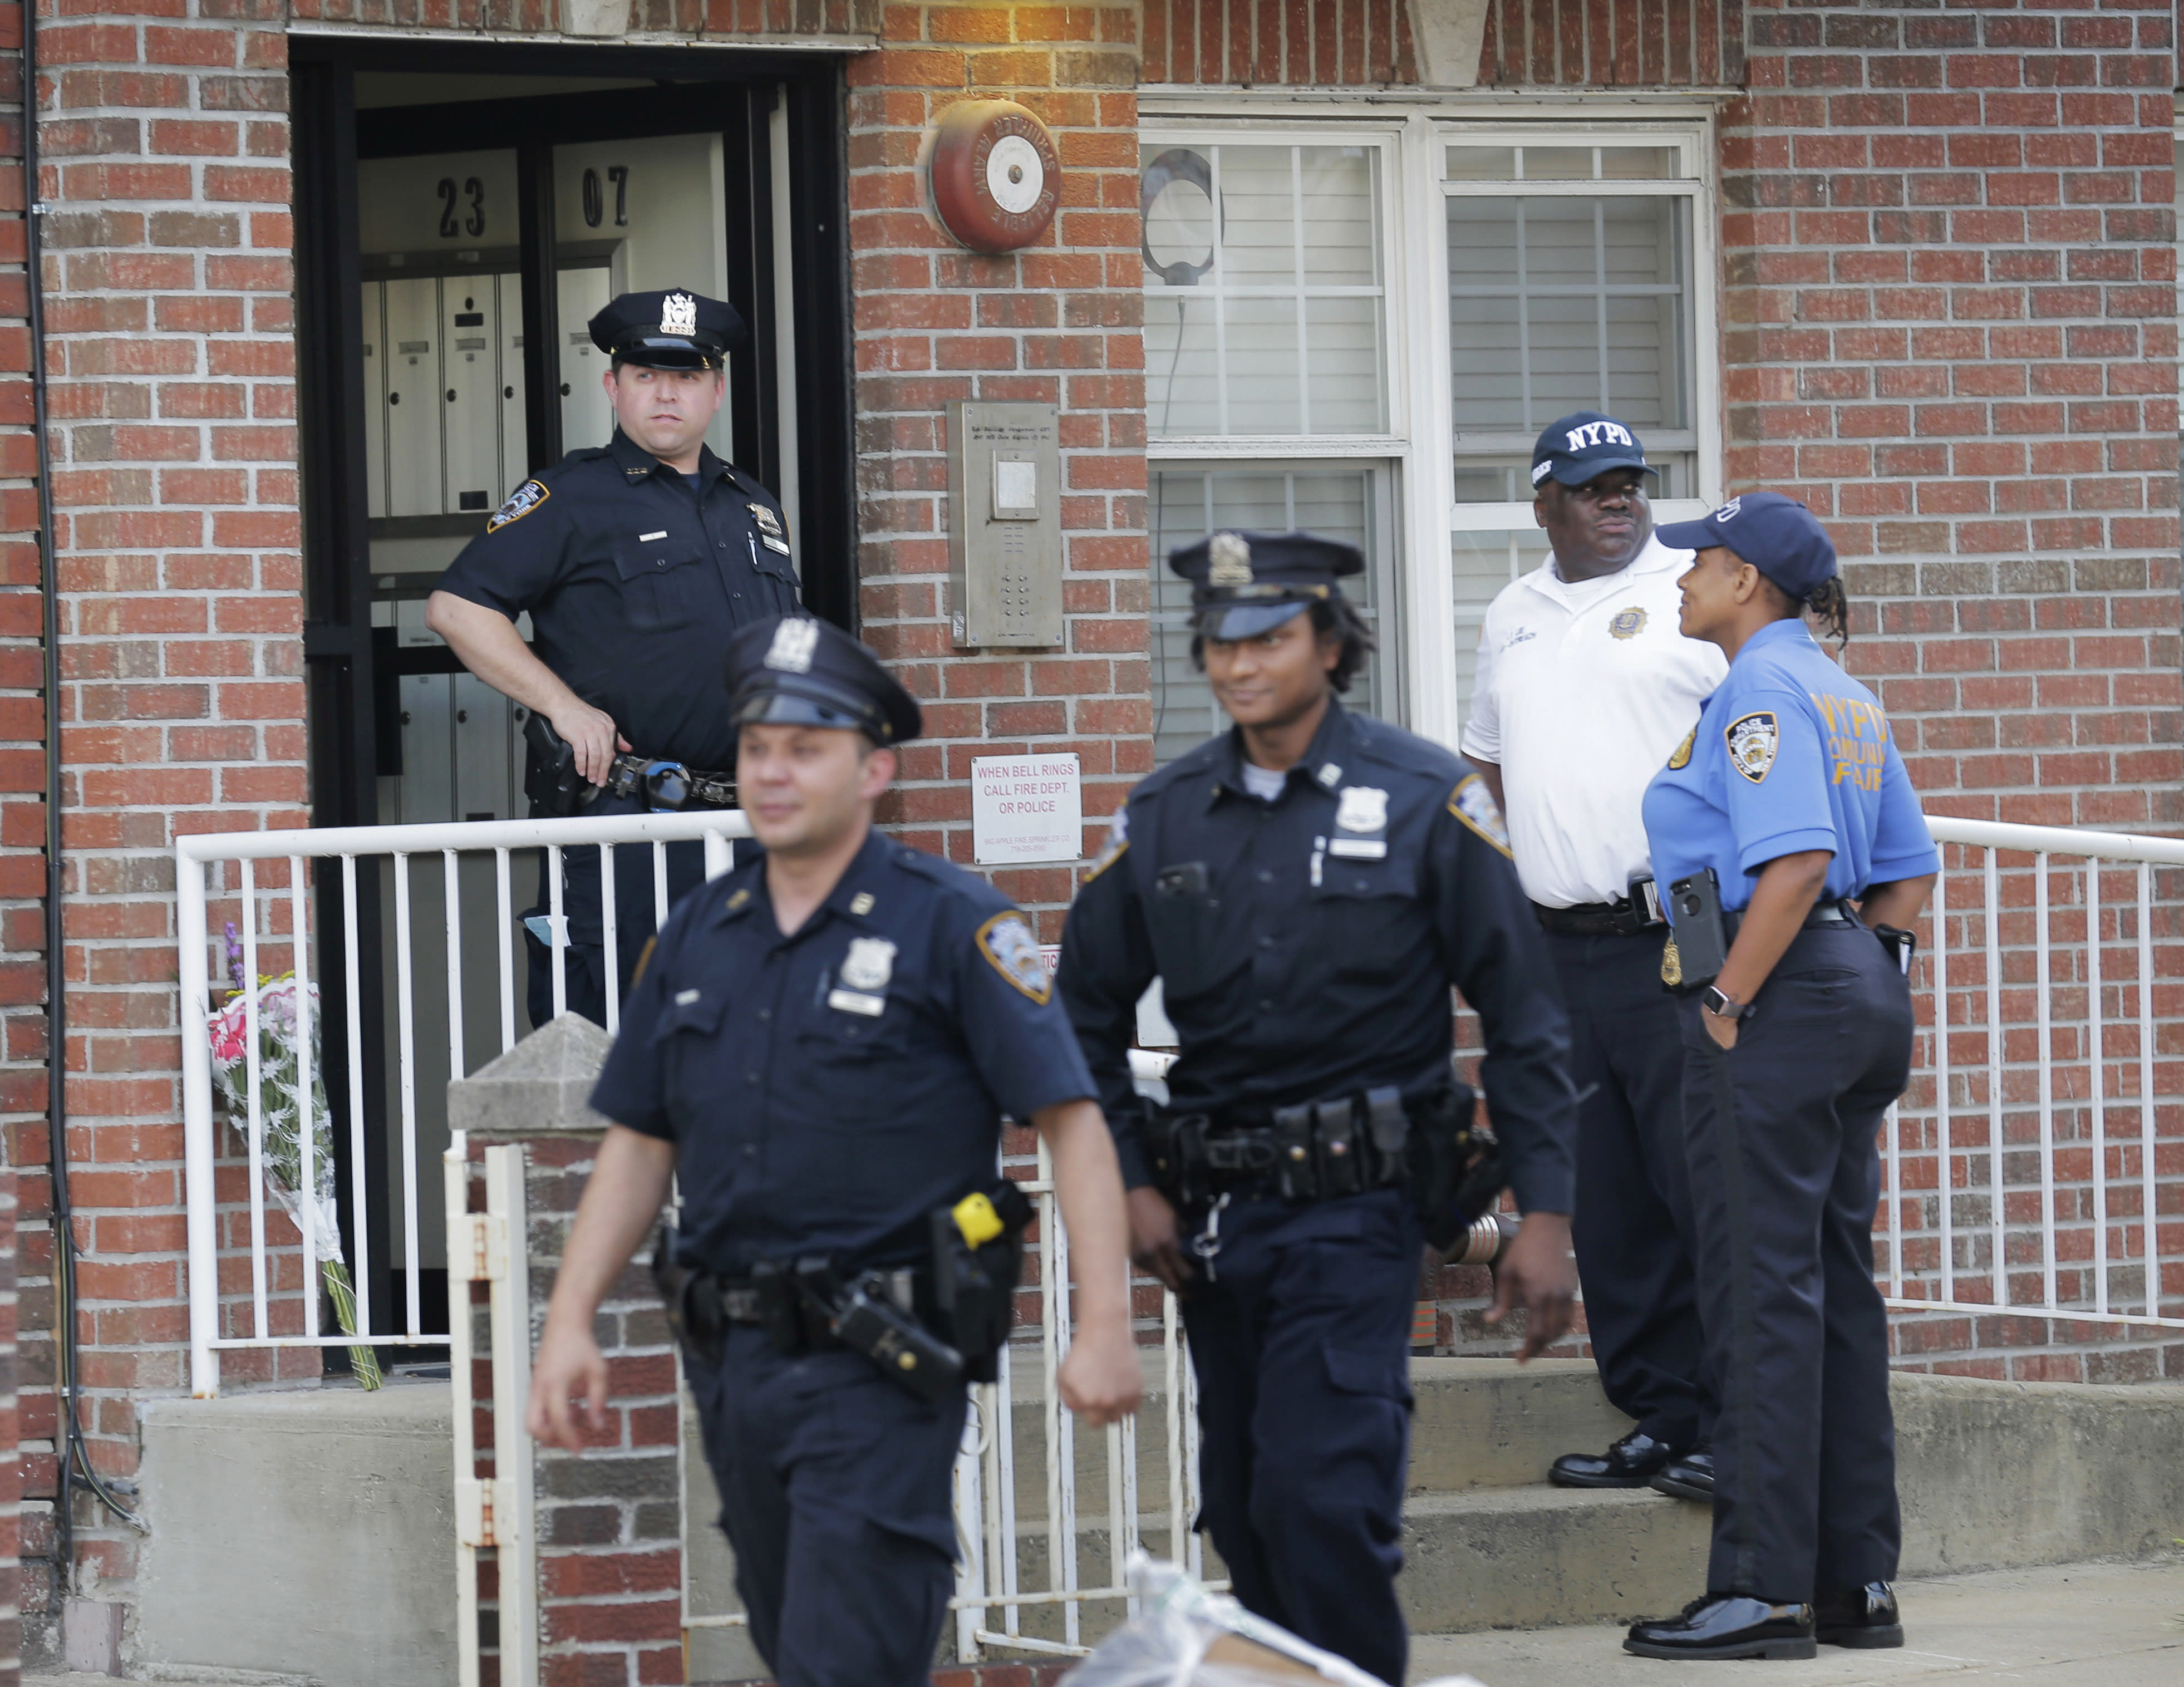 Police officers stand in front of a building where there was a shooting with multiple fatalities in the Queens borough of New York, Tuesday, July 31, 2018. (AP Photo/Seth Wenig)